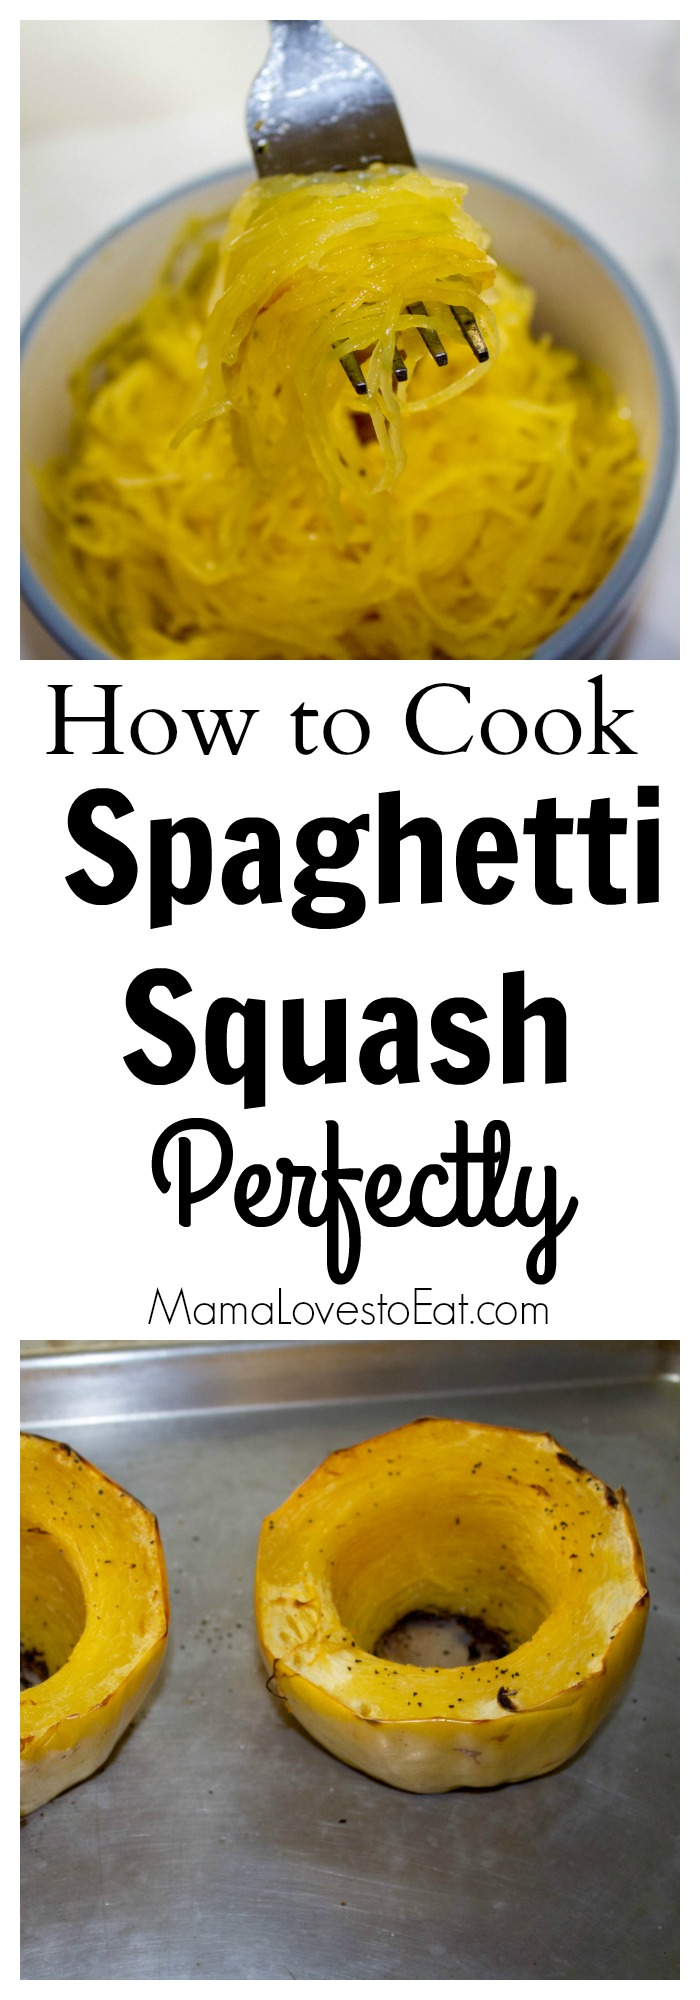 Looking for a pasta alternative? Whether you are watching carbs or need a gluten free meal idea, spaghetti squash is a delicious dinner that is great all on its own.